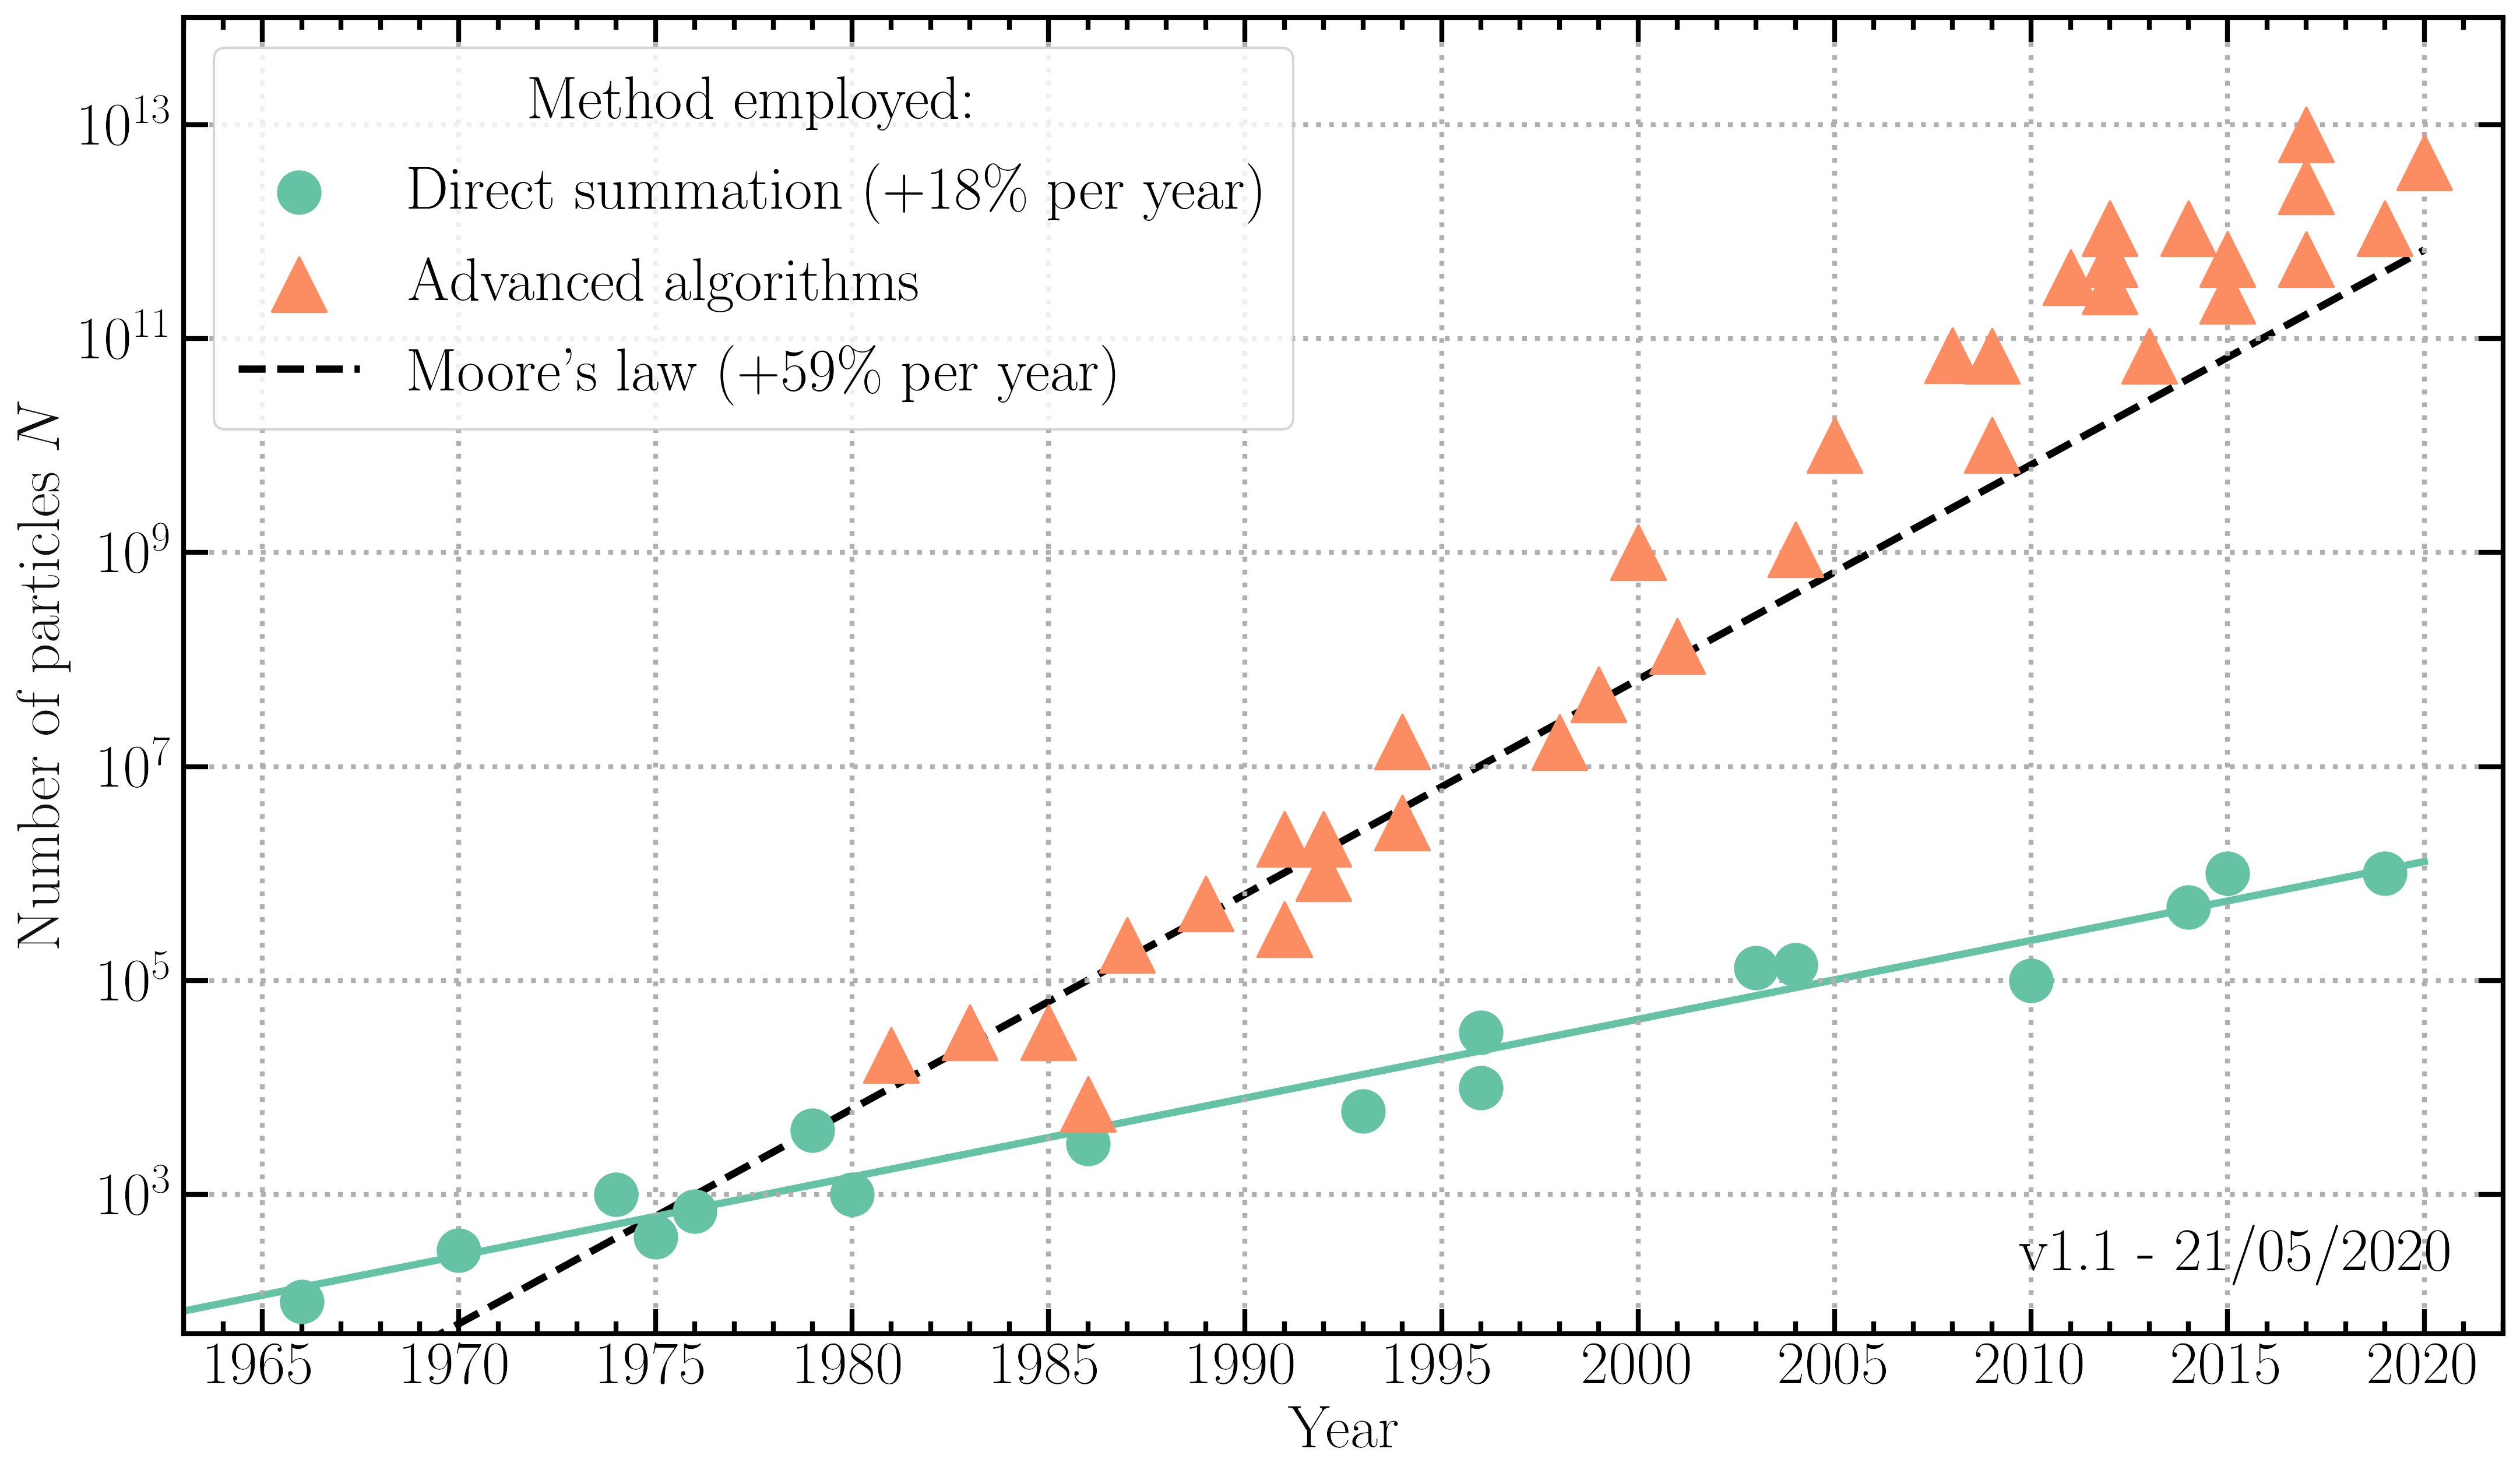 Number of particles in cosmological simulations as a function of time